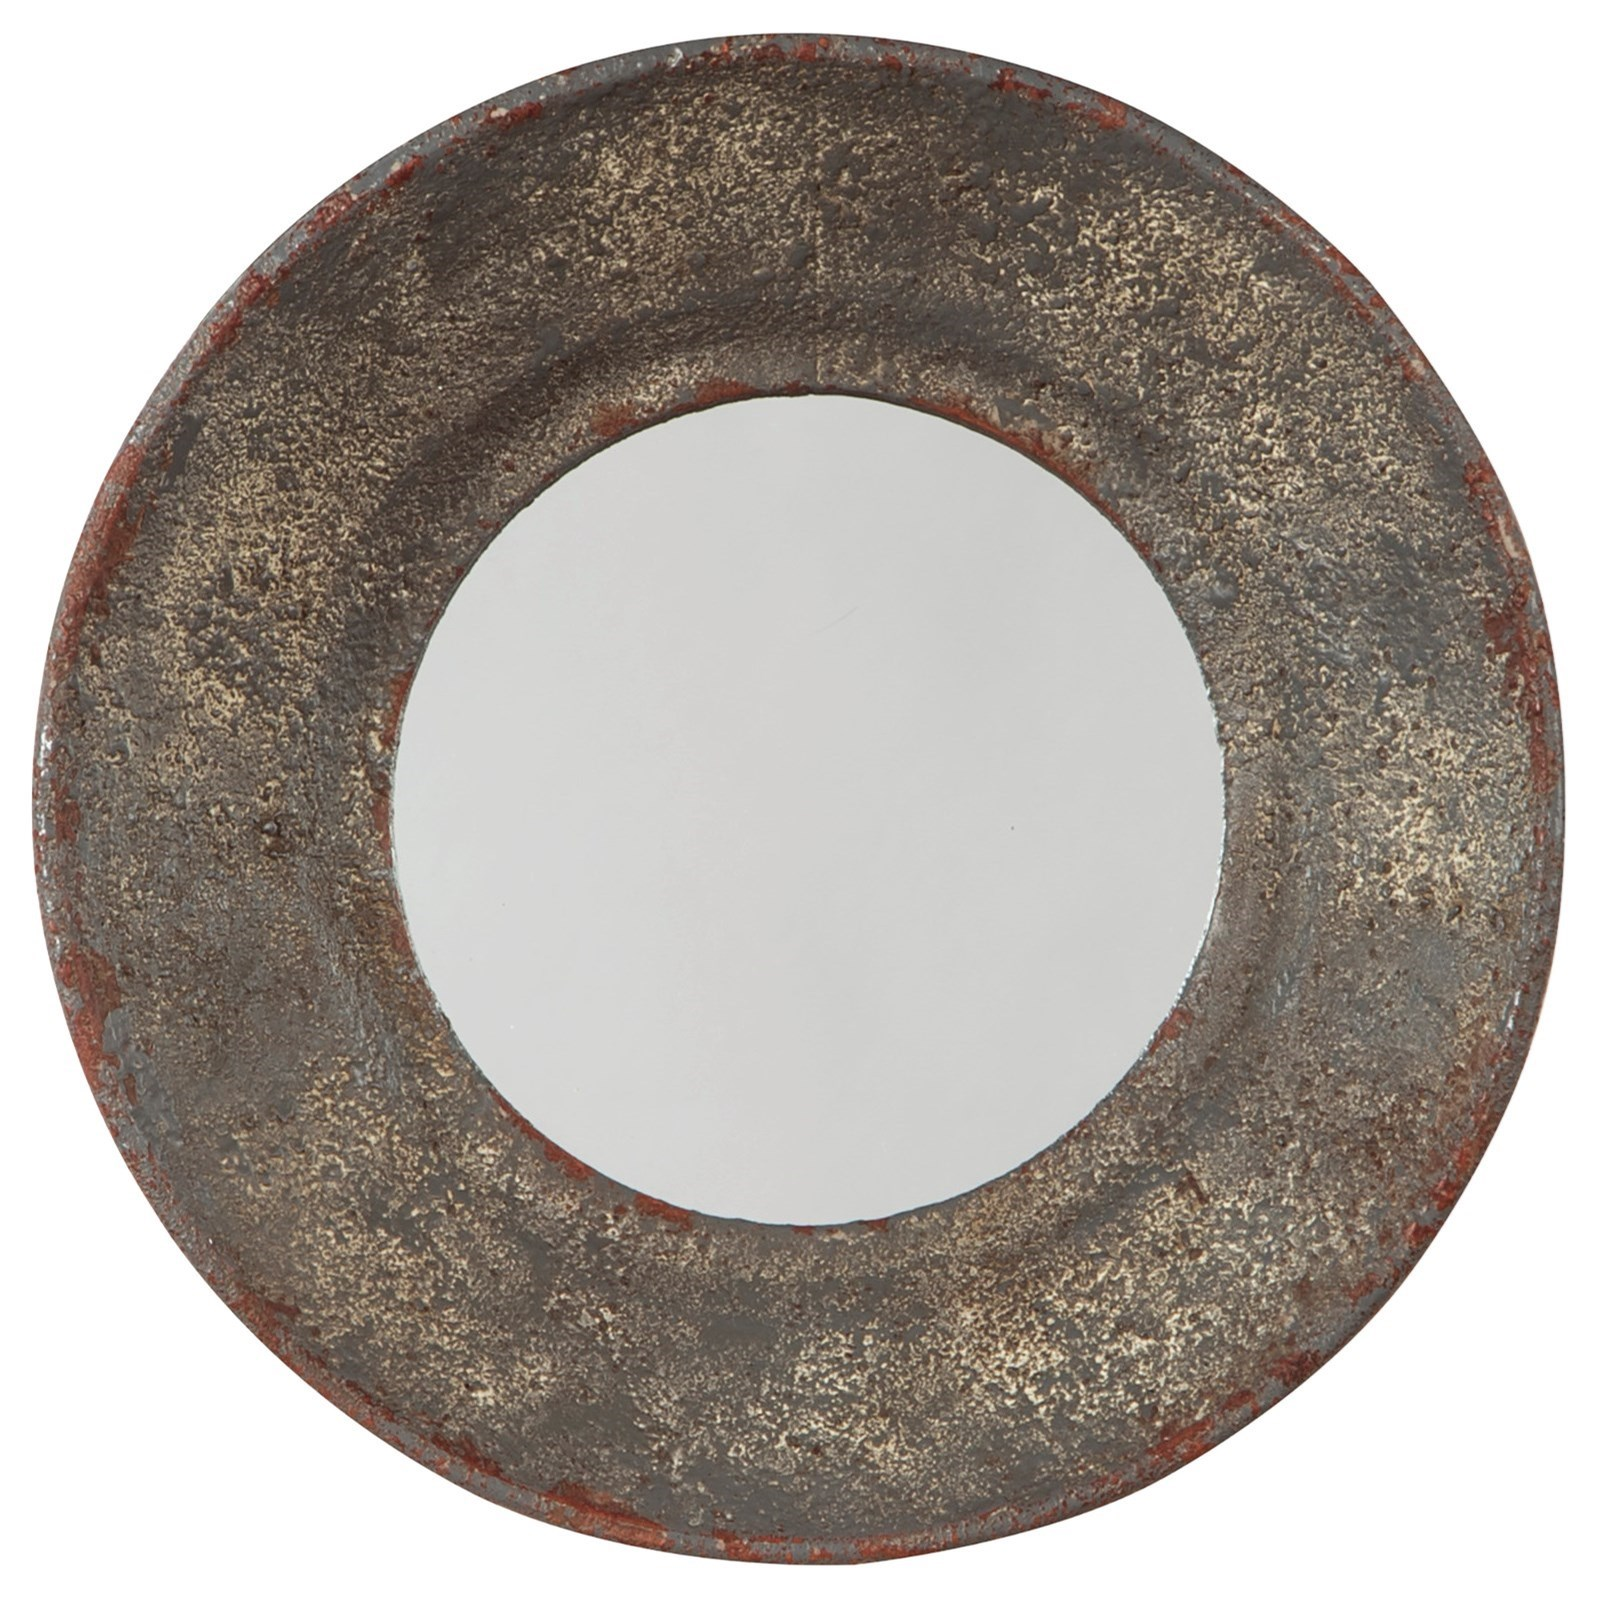 Accent Mirrors Carine Distressed Gray Accent Mirror by Signature Design by Ashley at Catalog Outlet